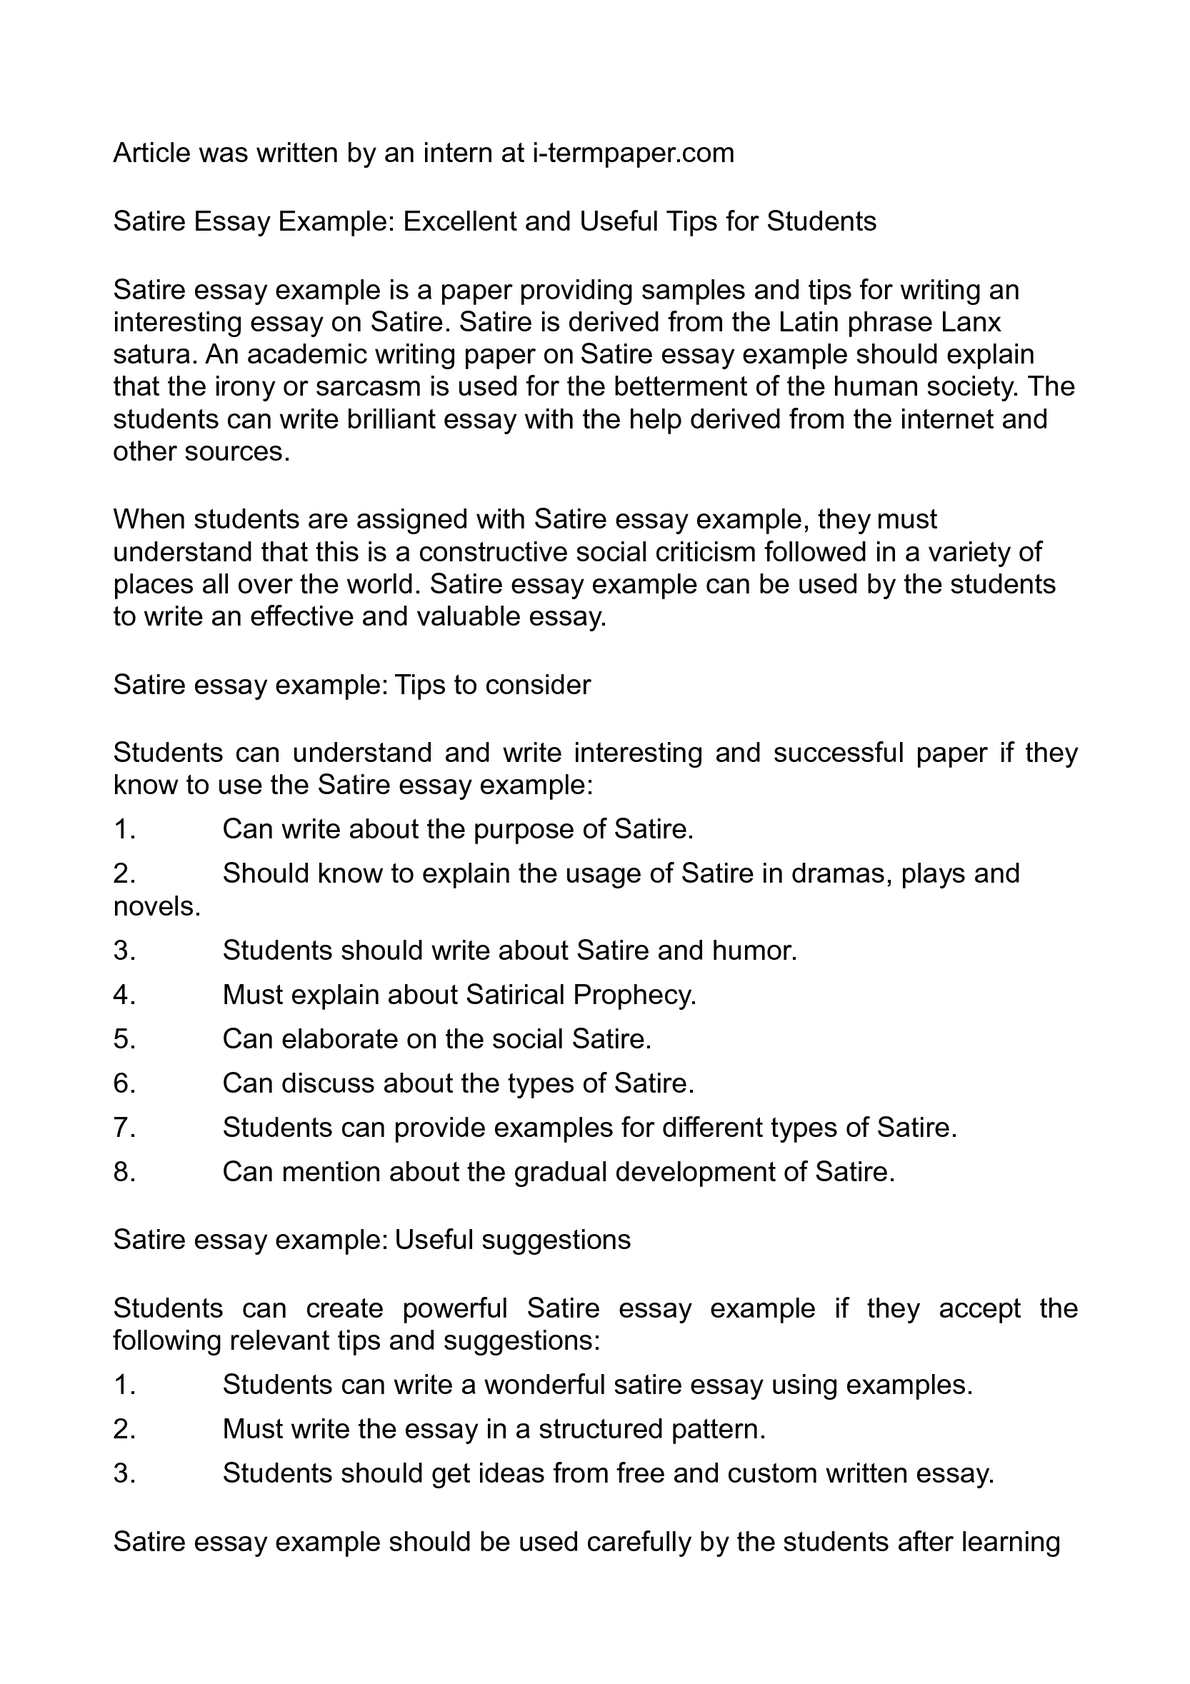 essay helping others pharmcas essay pharmcas essay oglasi pharmacy  satirical essay put women where they belong satirical essay at satirical essay topics gxart orgexamples of